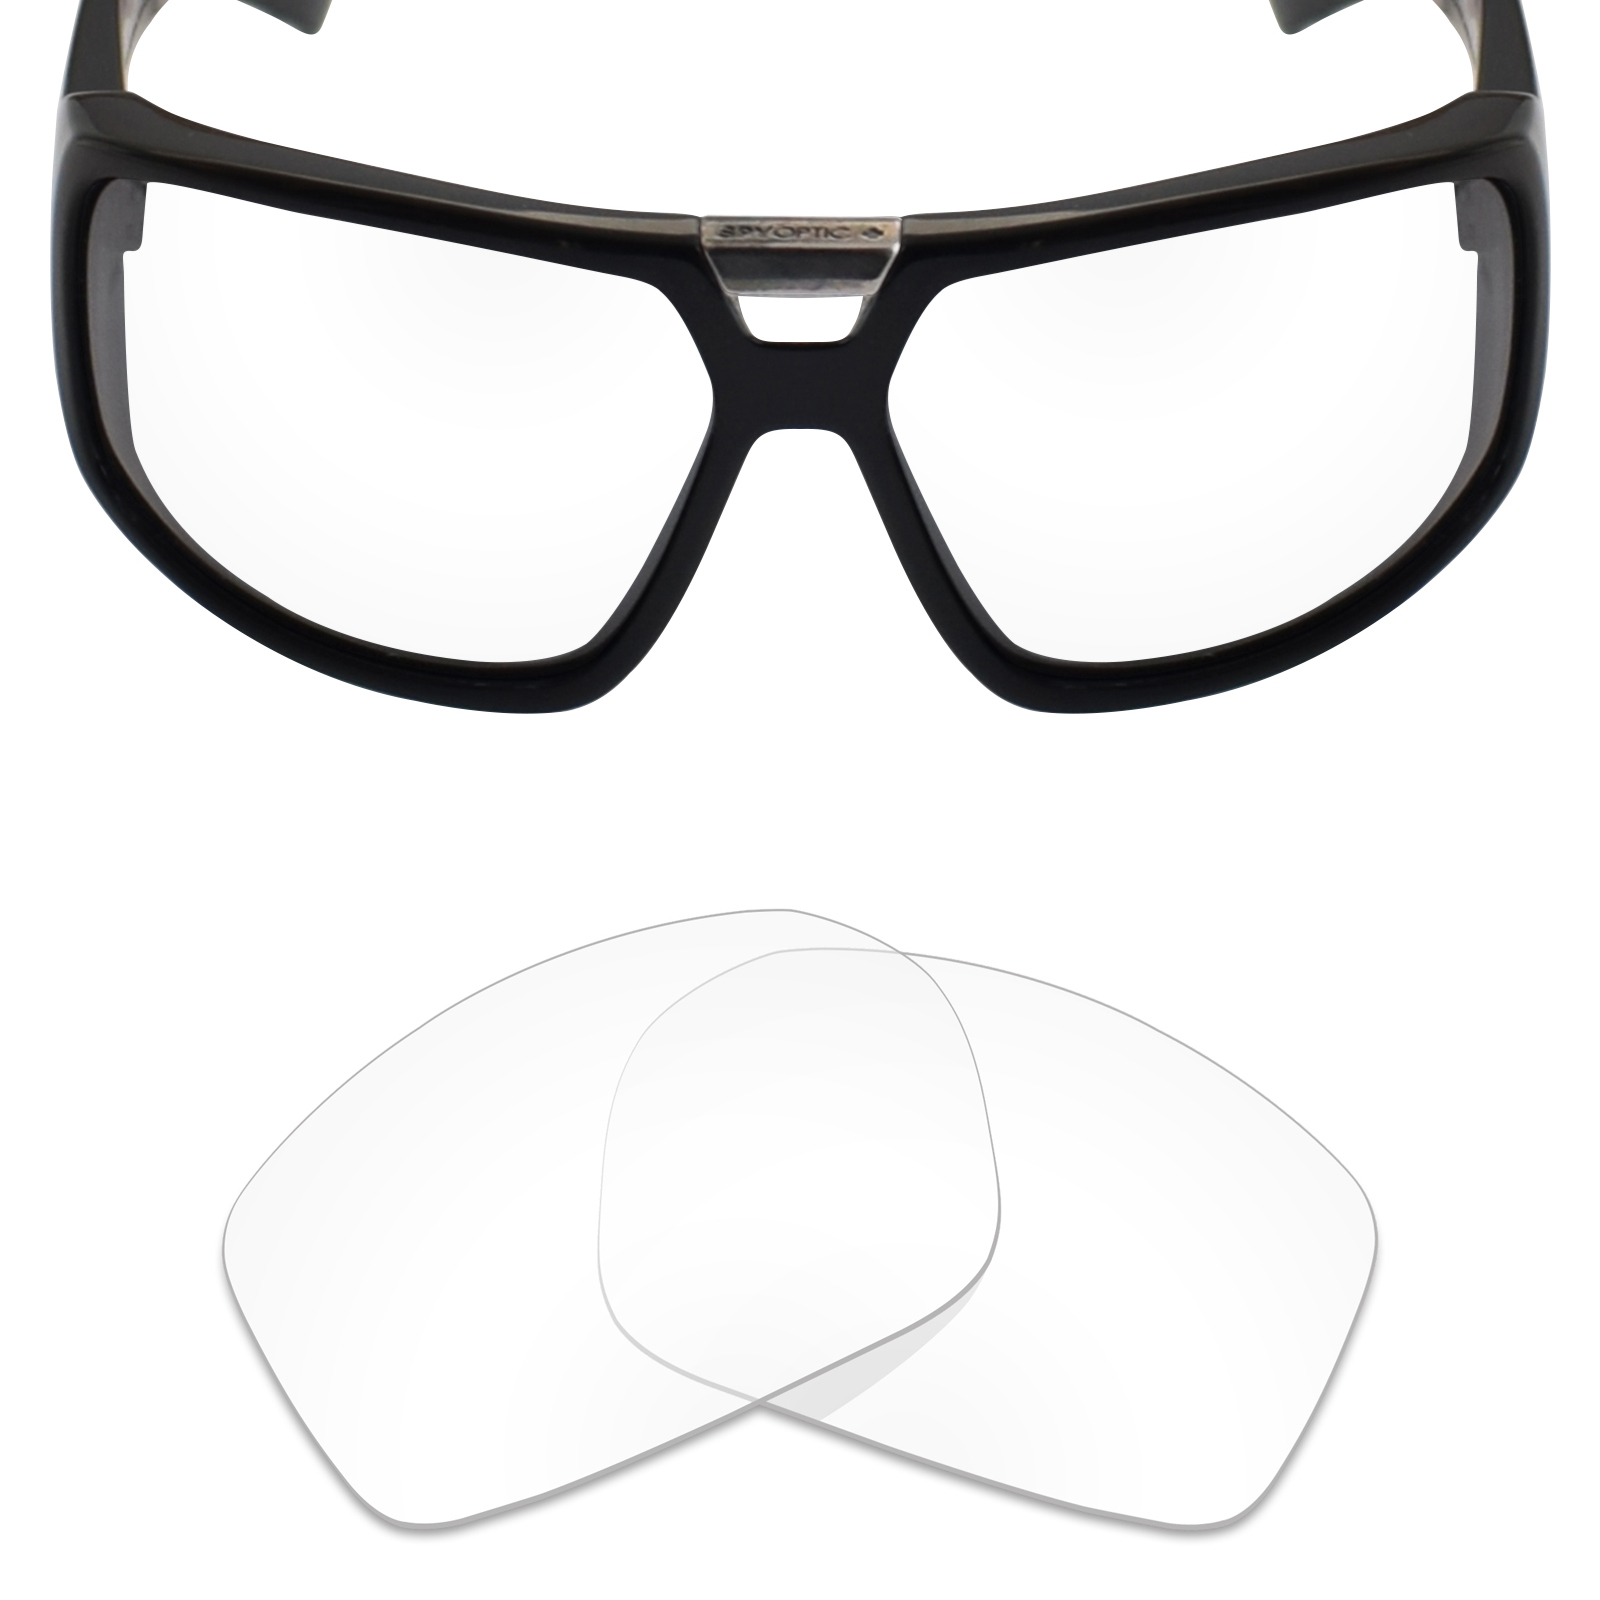 e30c9250f6 MRY Anti-Scratch Polarized Replacement Lens for Spy Optic Touring Sunglass  -Opt.